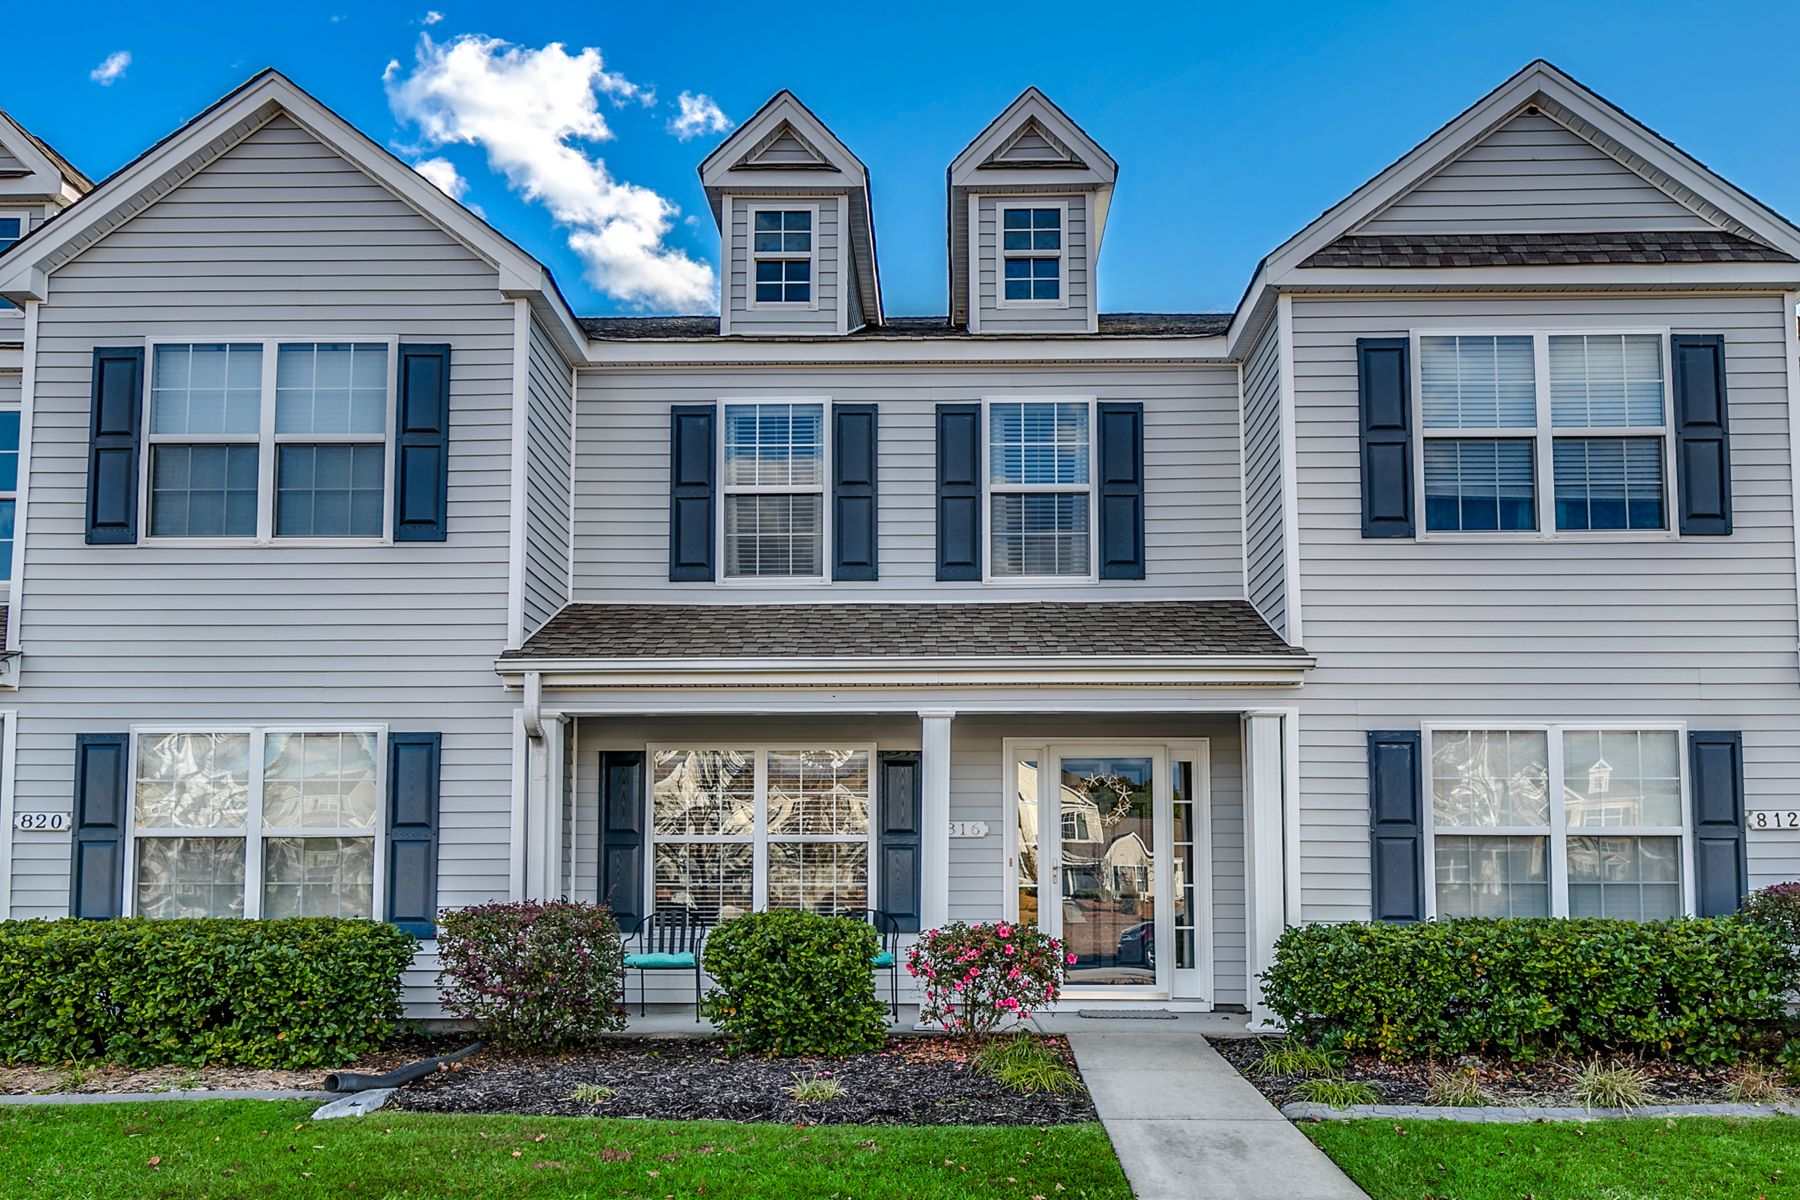 townhouses for Sale at 816 Barn Owl Ct, Unit 816 816 Barn Owl Ct, #816 Myrtle Beach, South Carolina 29579 United States